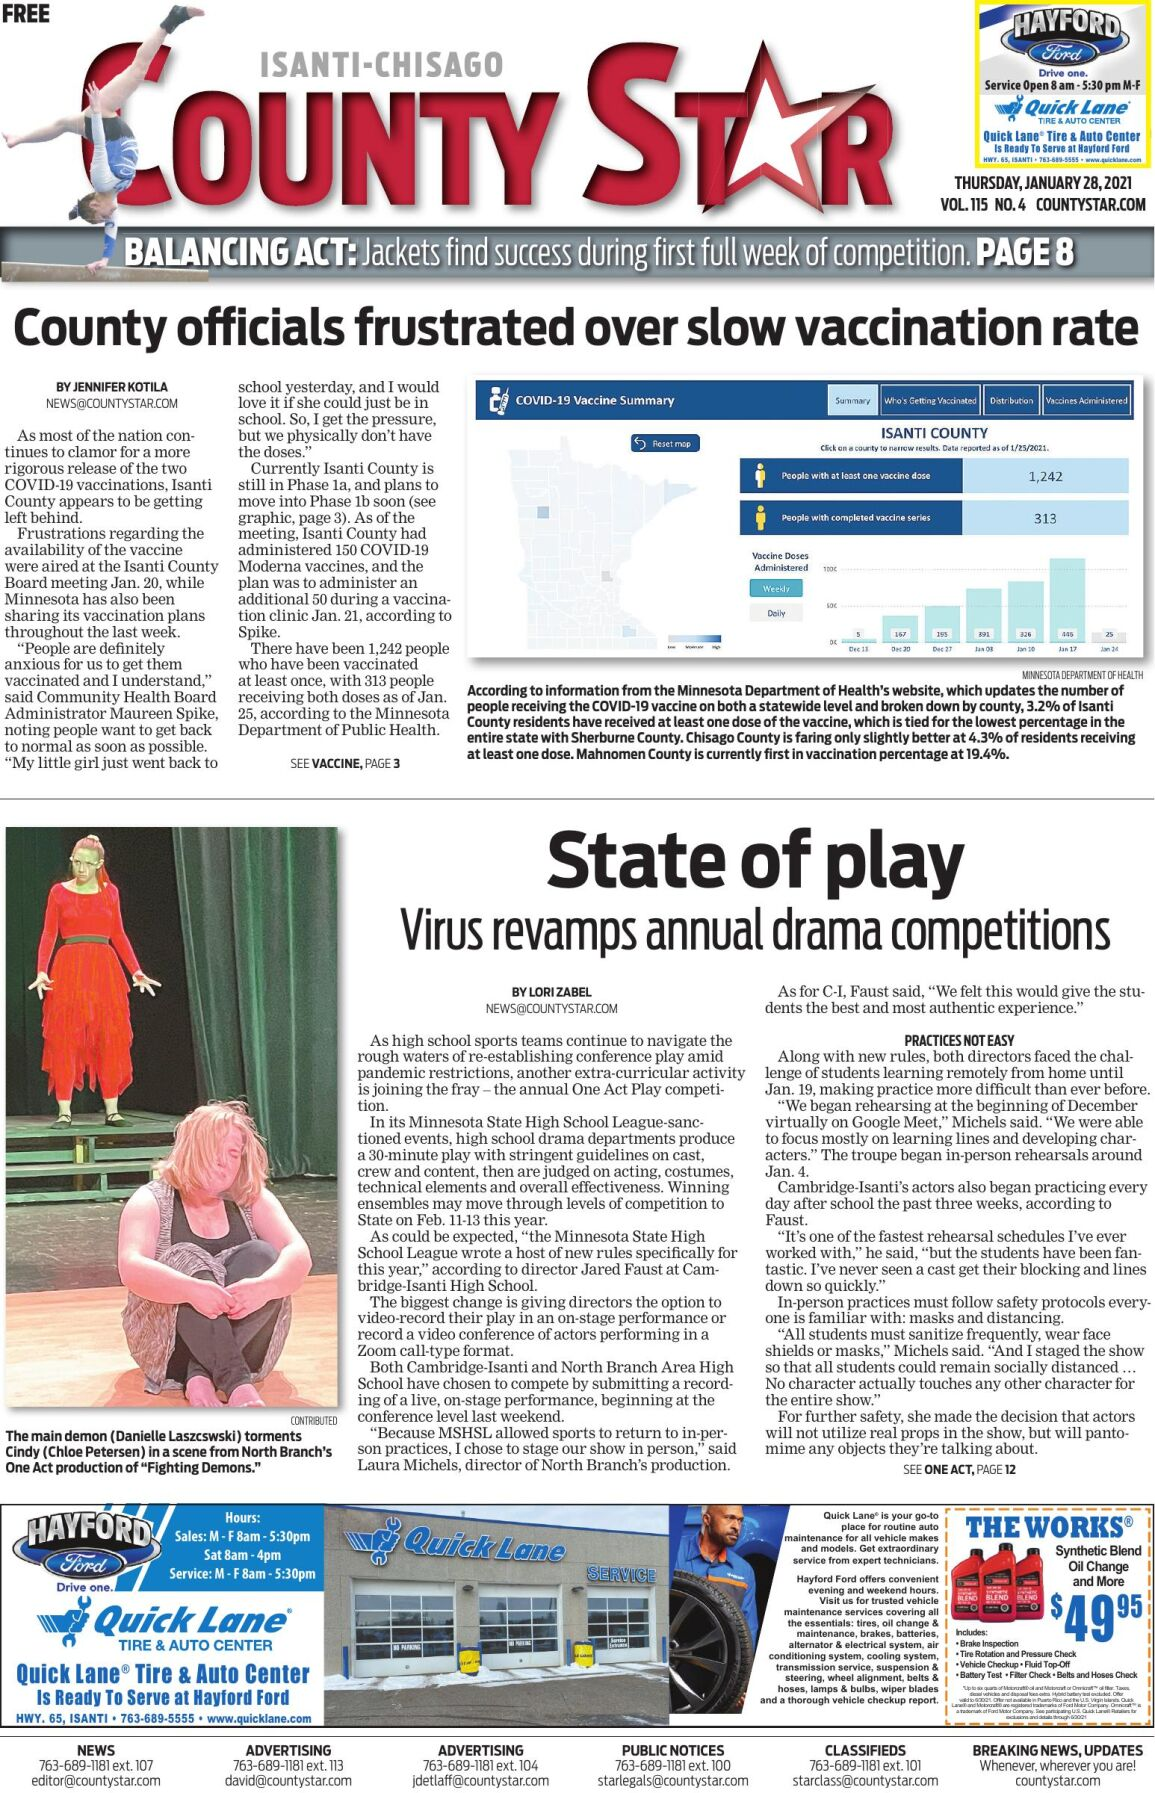 Isanti-Chisago County Star January 28, 2021 e-edition